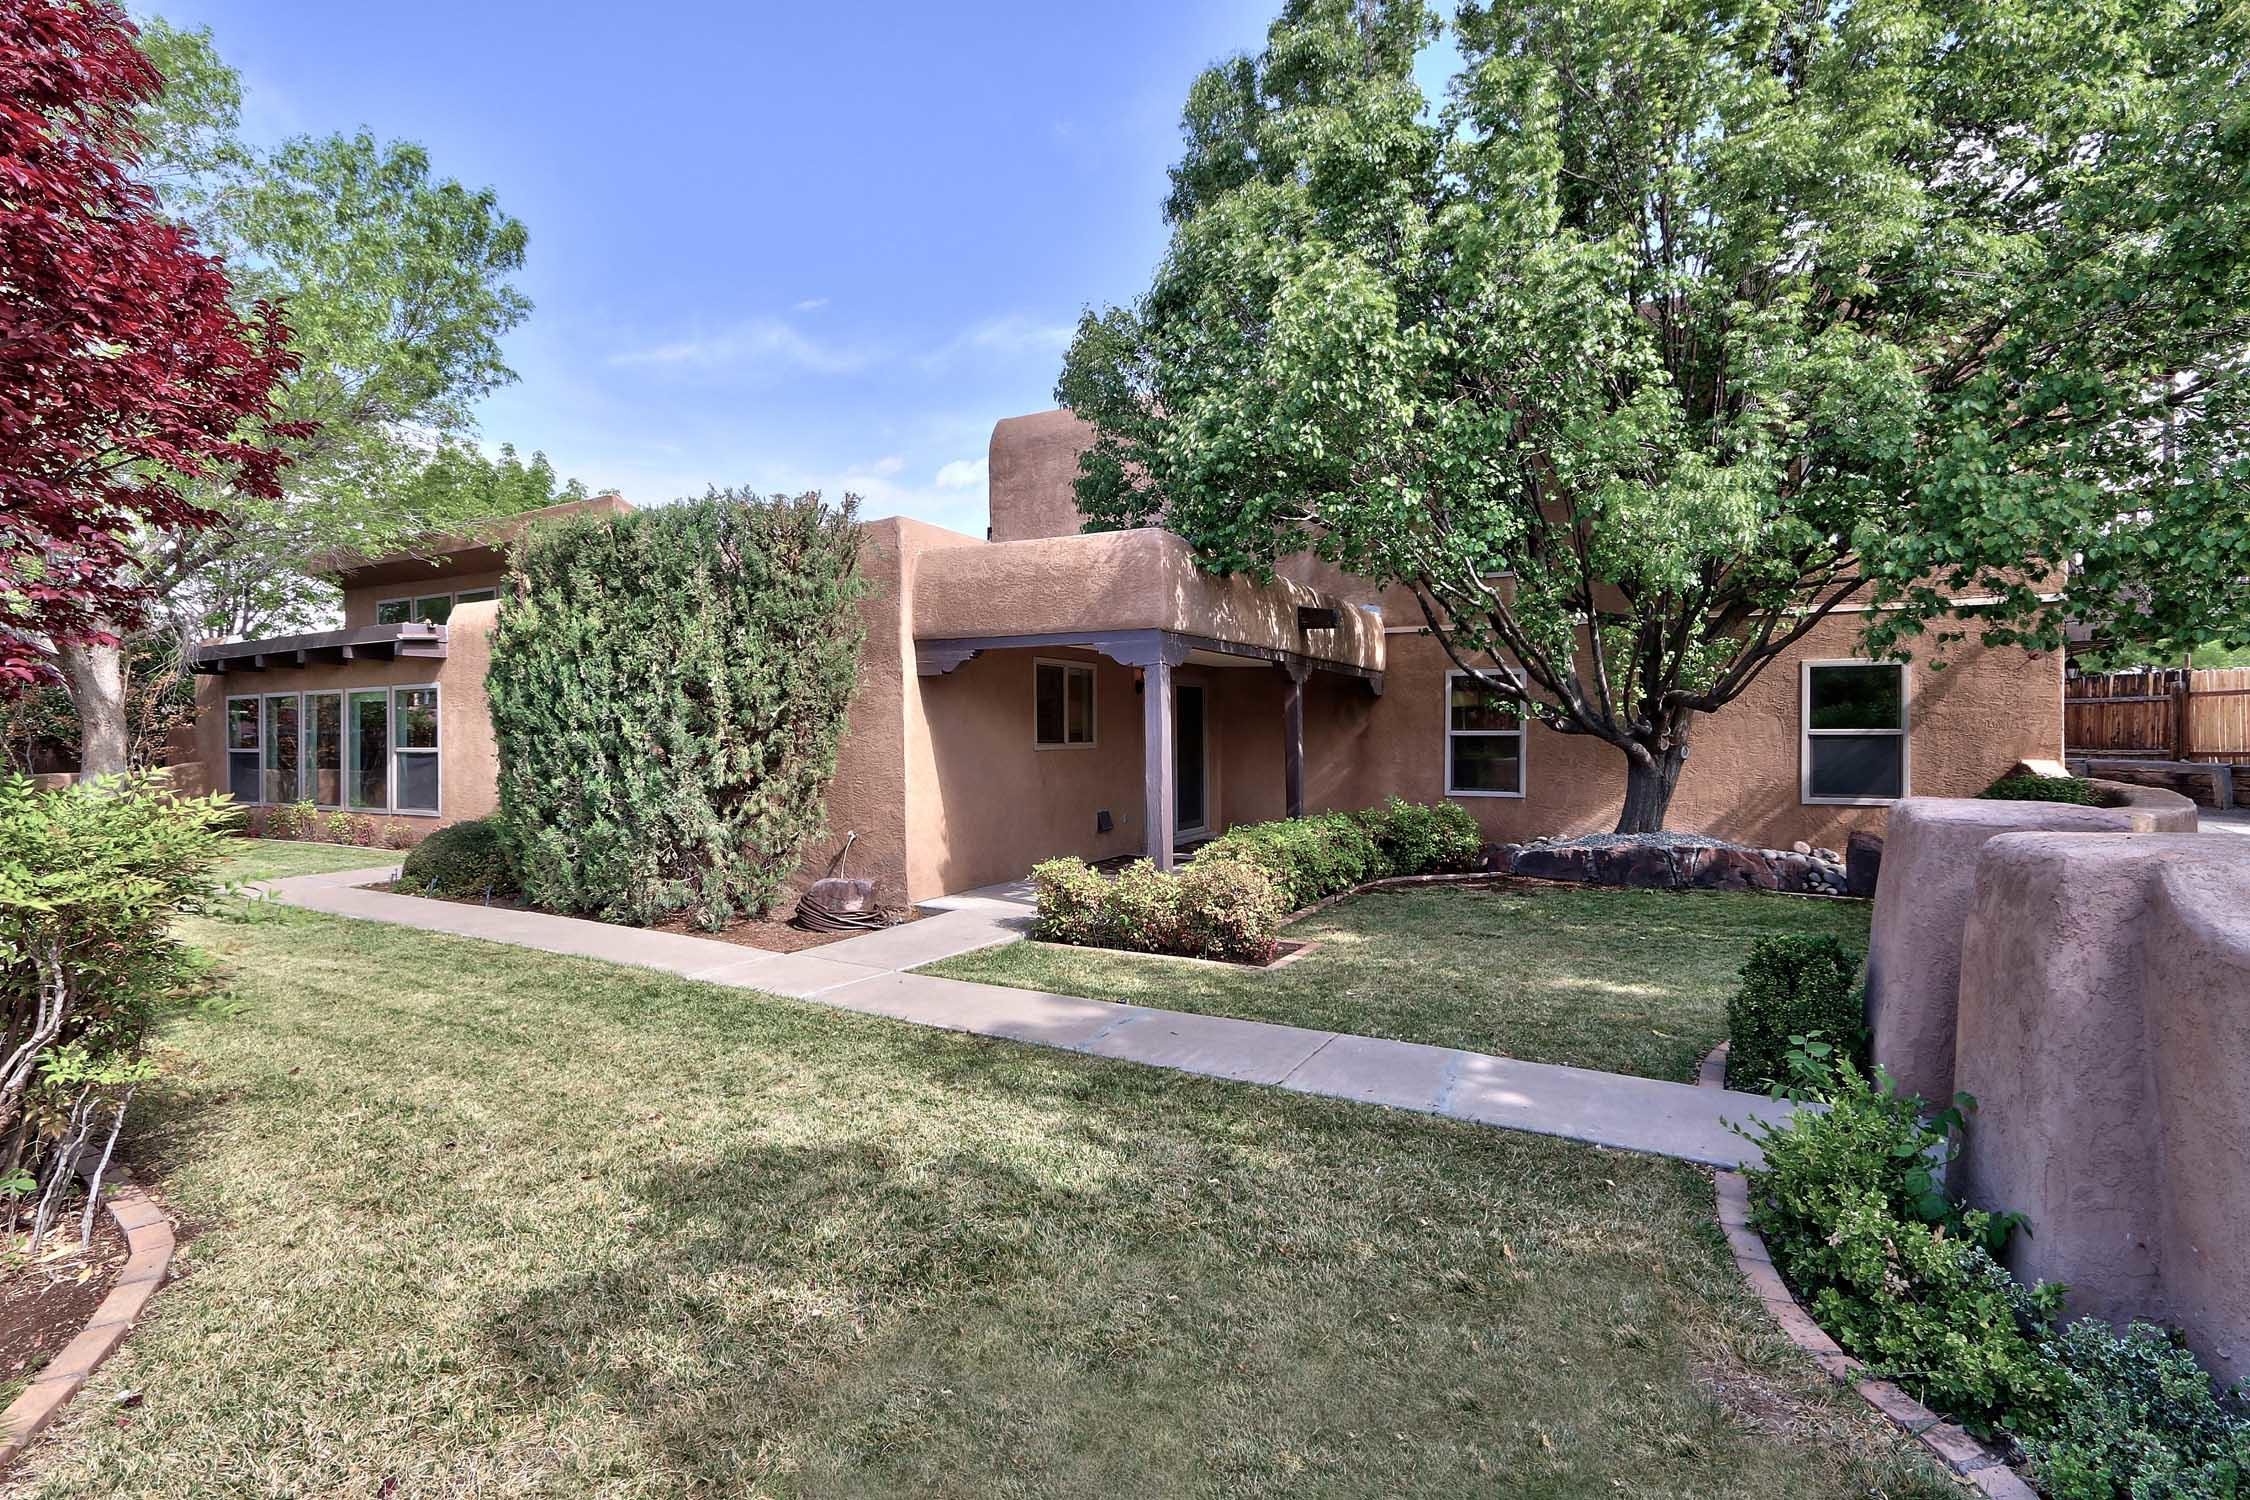 Extraordinary North Valley custom home set in a beautiful neighborhood on close to 1/2 acre of mature trees, grass & even a putting green. Completely renovated &  flooded w/ light, the home boasts new tile flooring, new carpets, renovated kitchen w/ sparkling SS appliances, updated bathrooms & new paint. 2  new refrigerated air units & 2 spacious master suites, one downstairs. The upstairs master boasts a large walk-in closet, renovated bath w/ 2 sinks & a balcony from which to enjoy stunning mountain views. The property's 10-car garage is a car lovers dream w/ one huge (8 car) separate garage & an attached 2-car garage w/ epoxy-finished floors. Perfect hard-to-find space for a car collector, workshop or hobbyist. Bring your cars & green thumb to this private oasis close to all amenities!